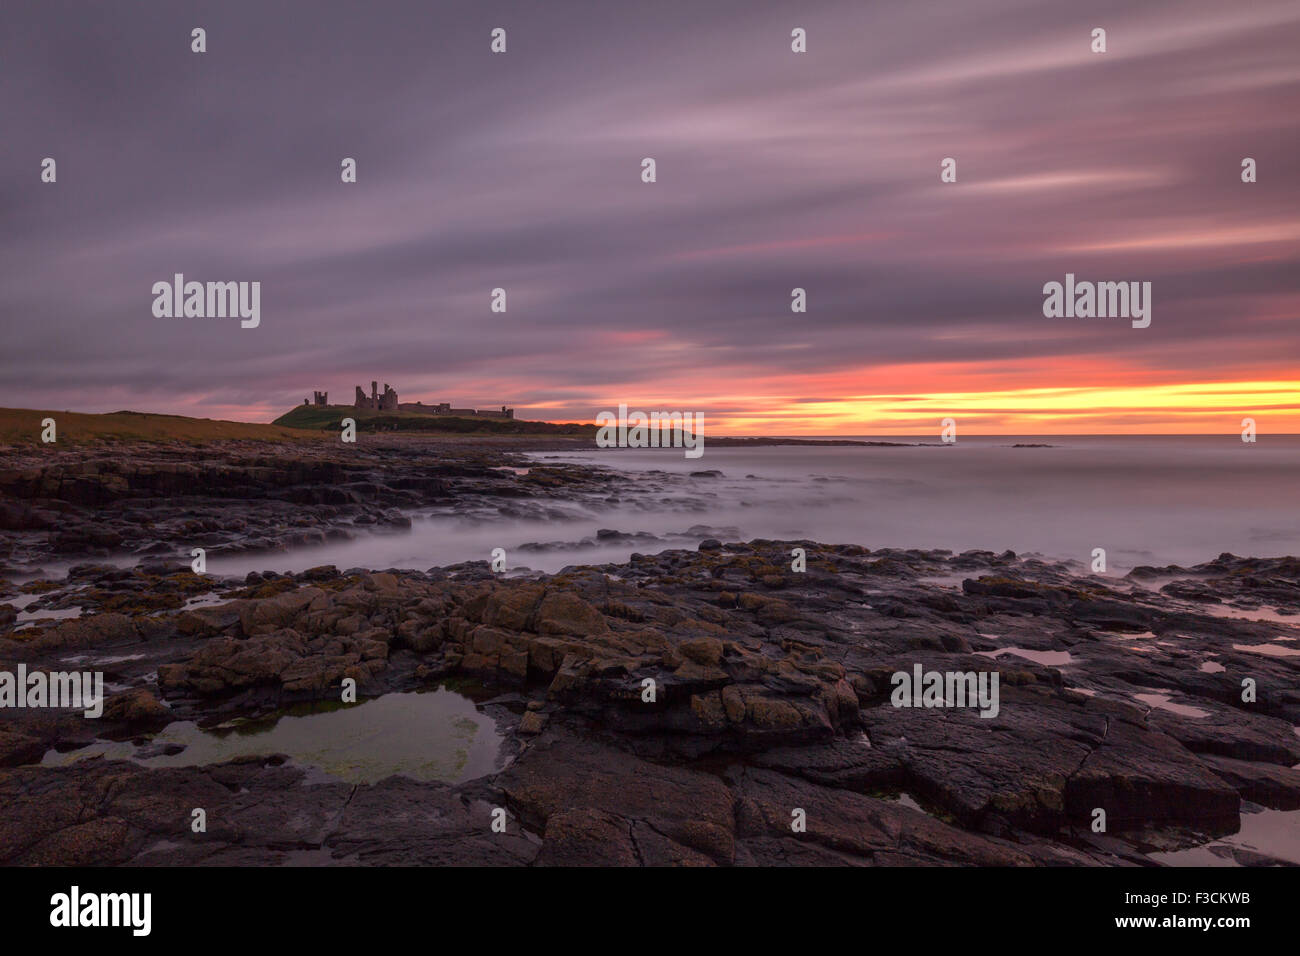 Dunstanburgh Castle at dawn, looking over the rocky shoreline, Northumberland, UK Stock Photo